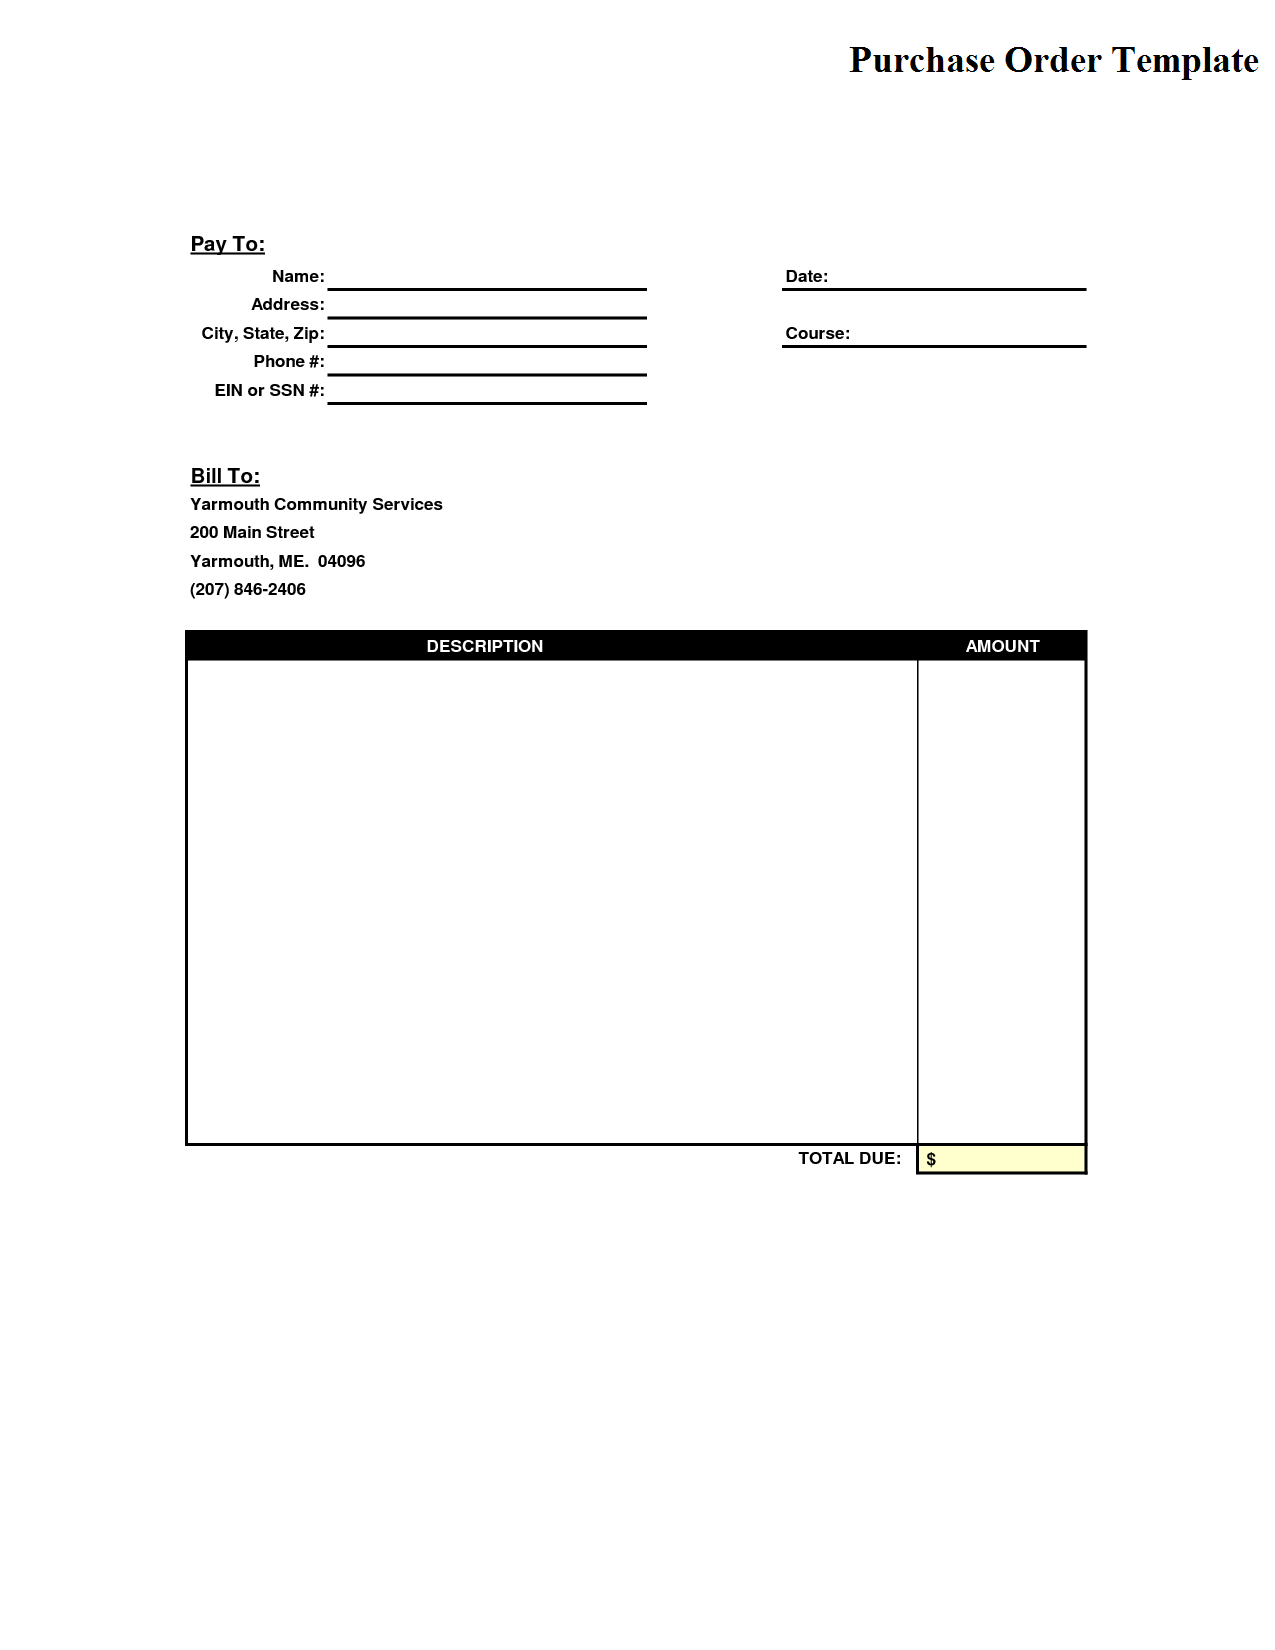 Purchase Order Template Pdf Images - Template Design Ideas